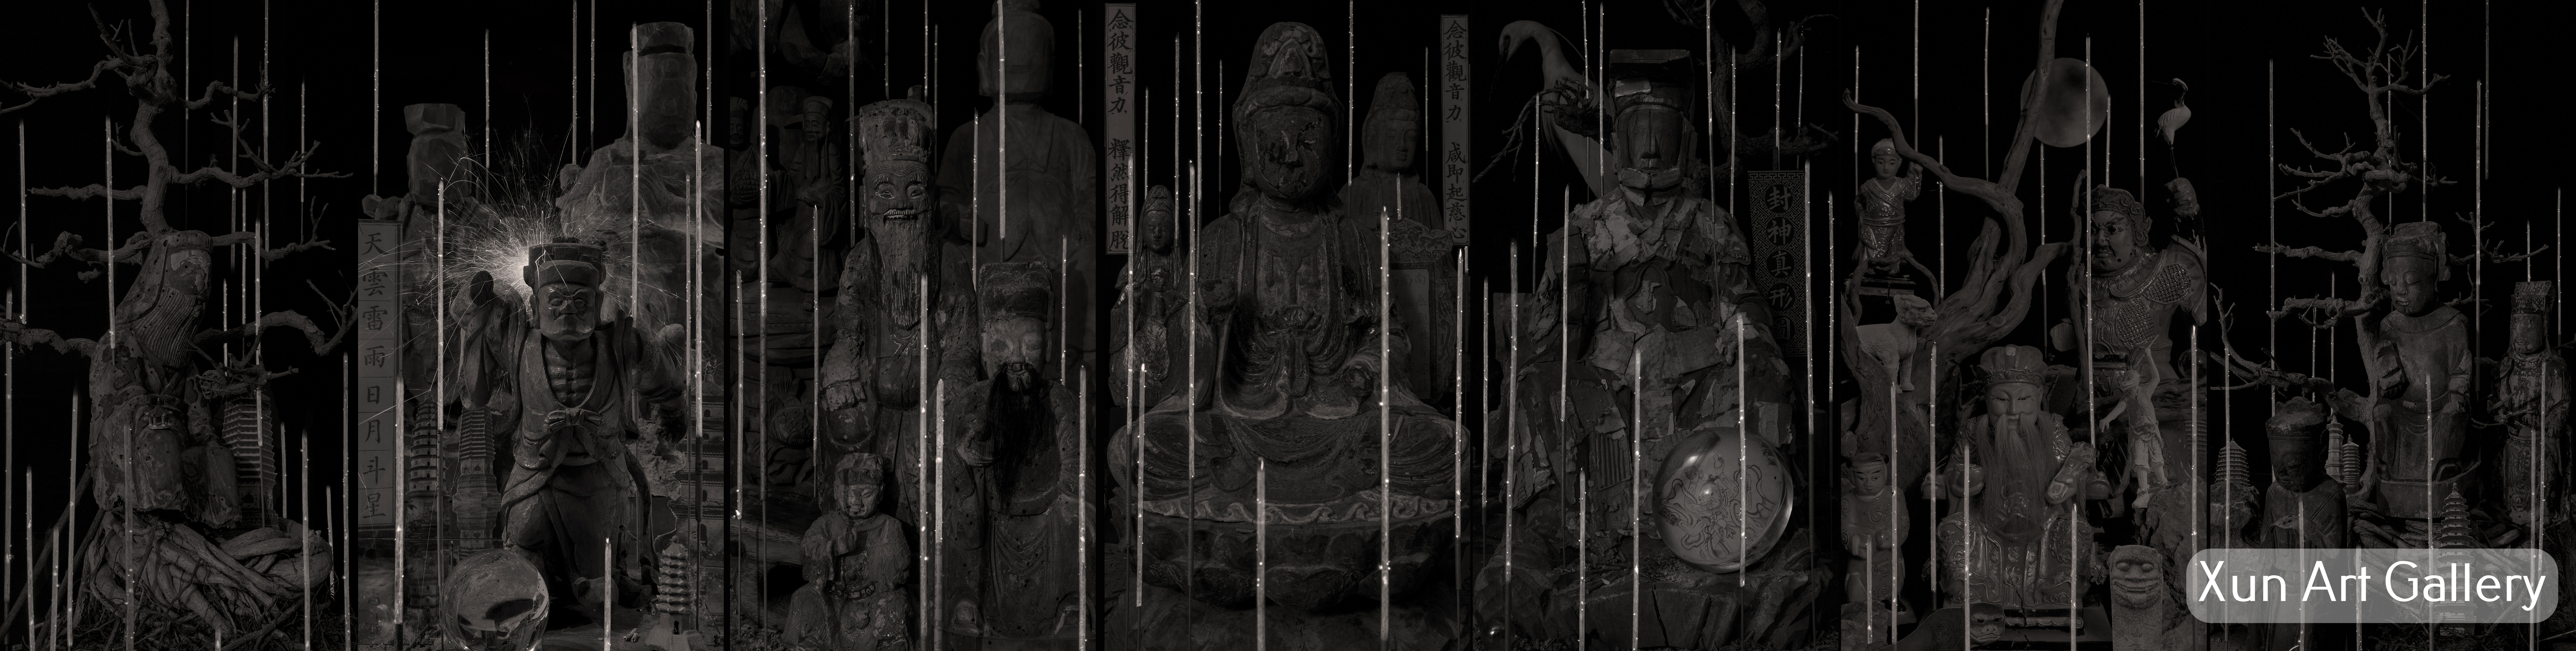 Maleonn - Part one - Statues of various gods and Buddhas - 2019